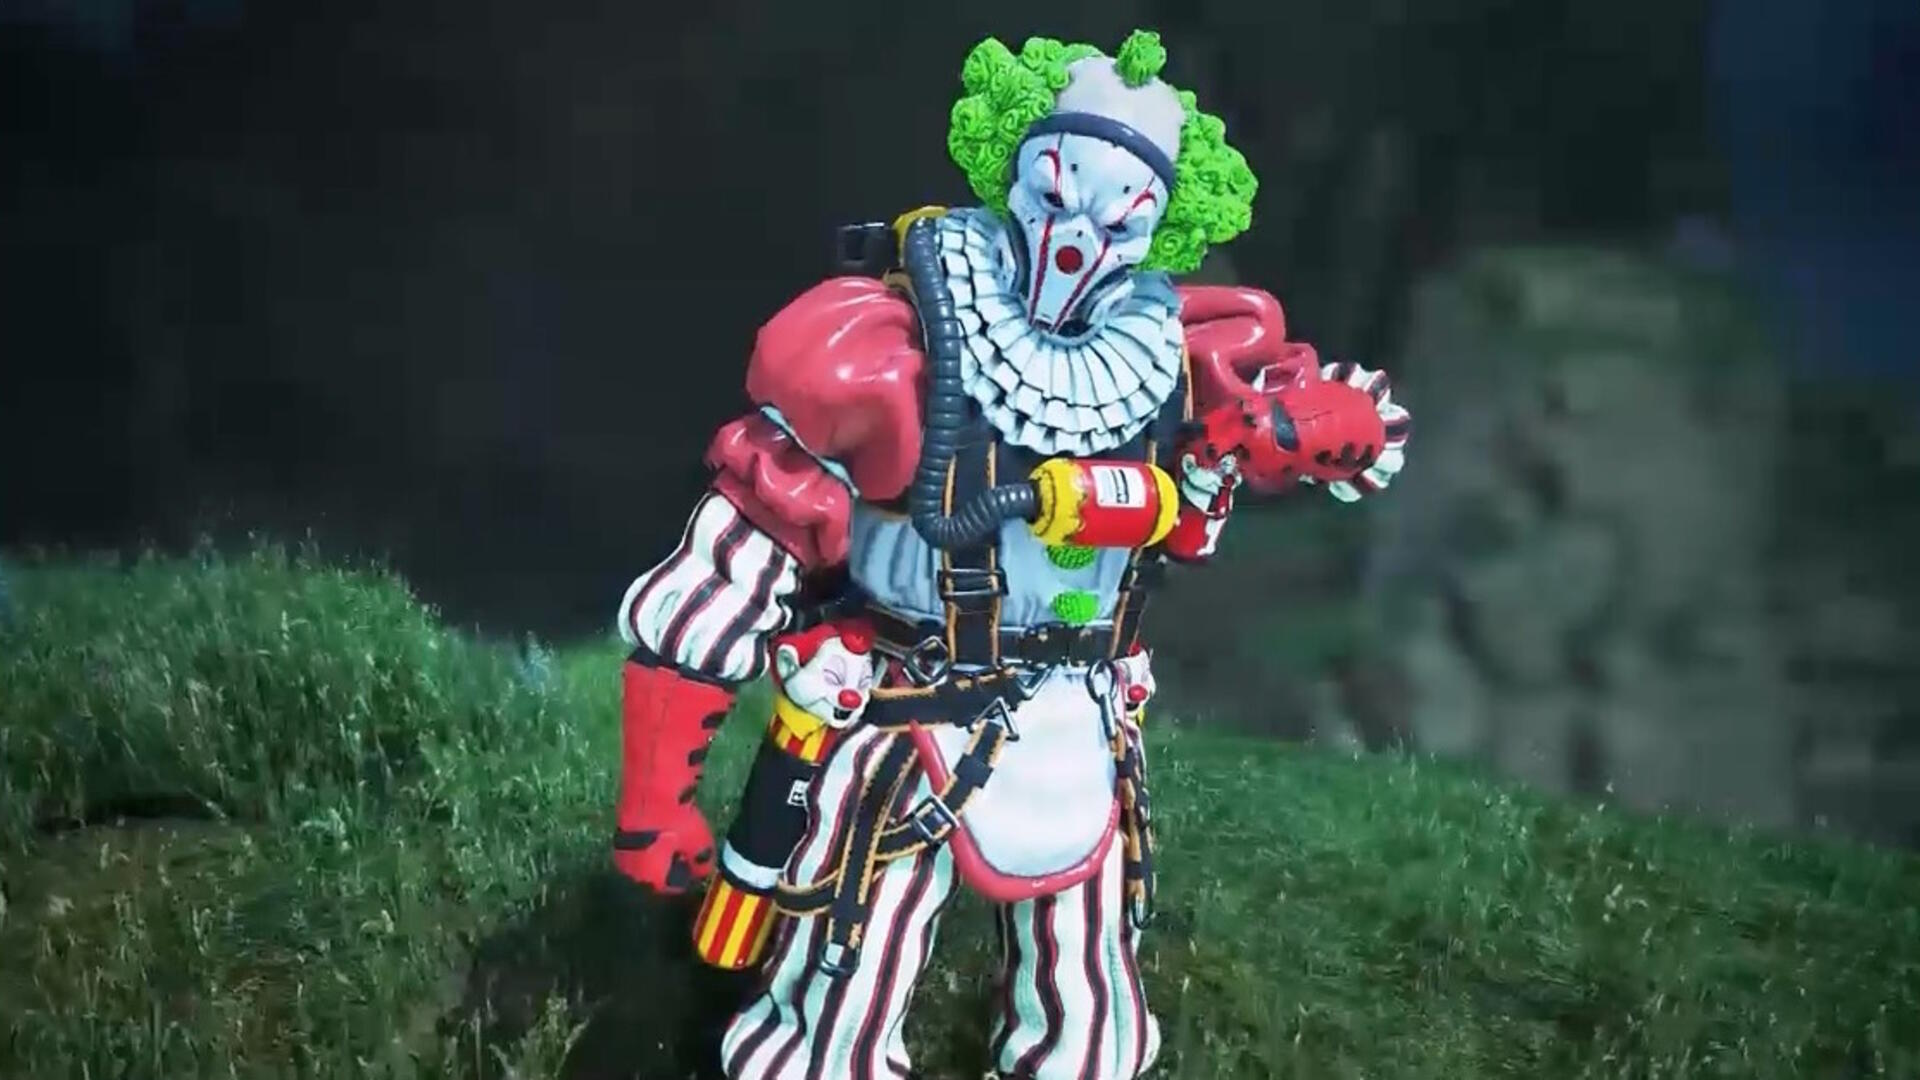 Apex Legends Halloween Event Release Date - All the New Halloween Skins